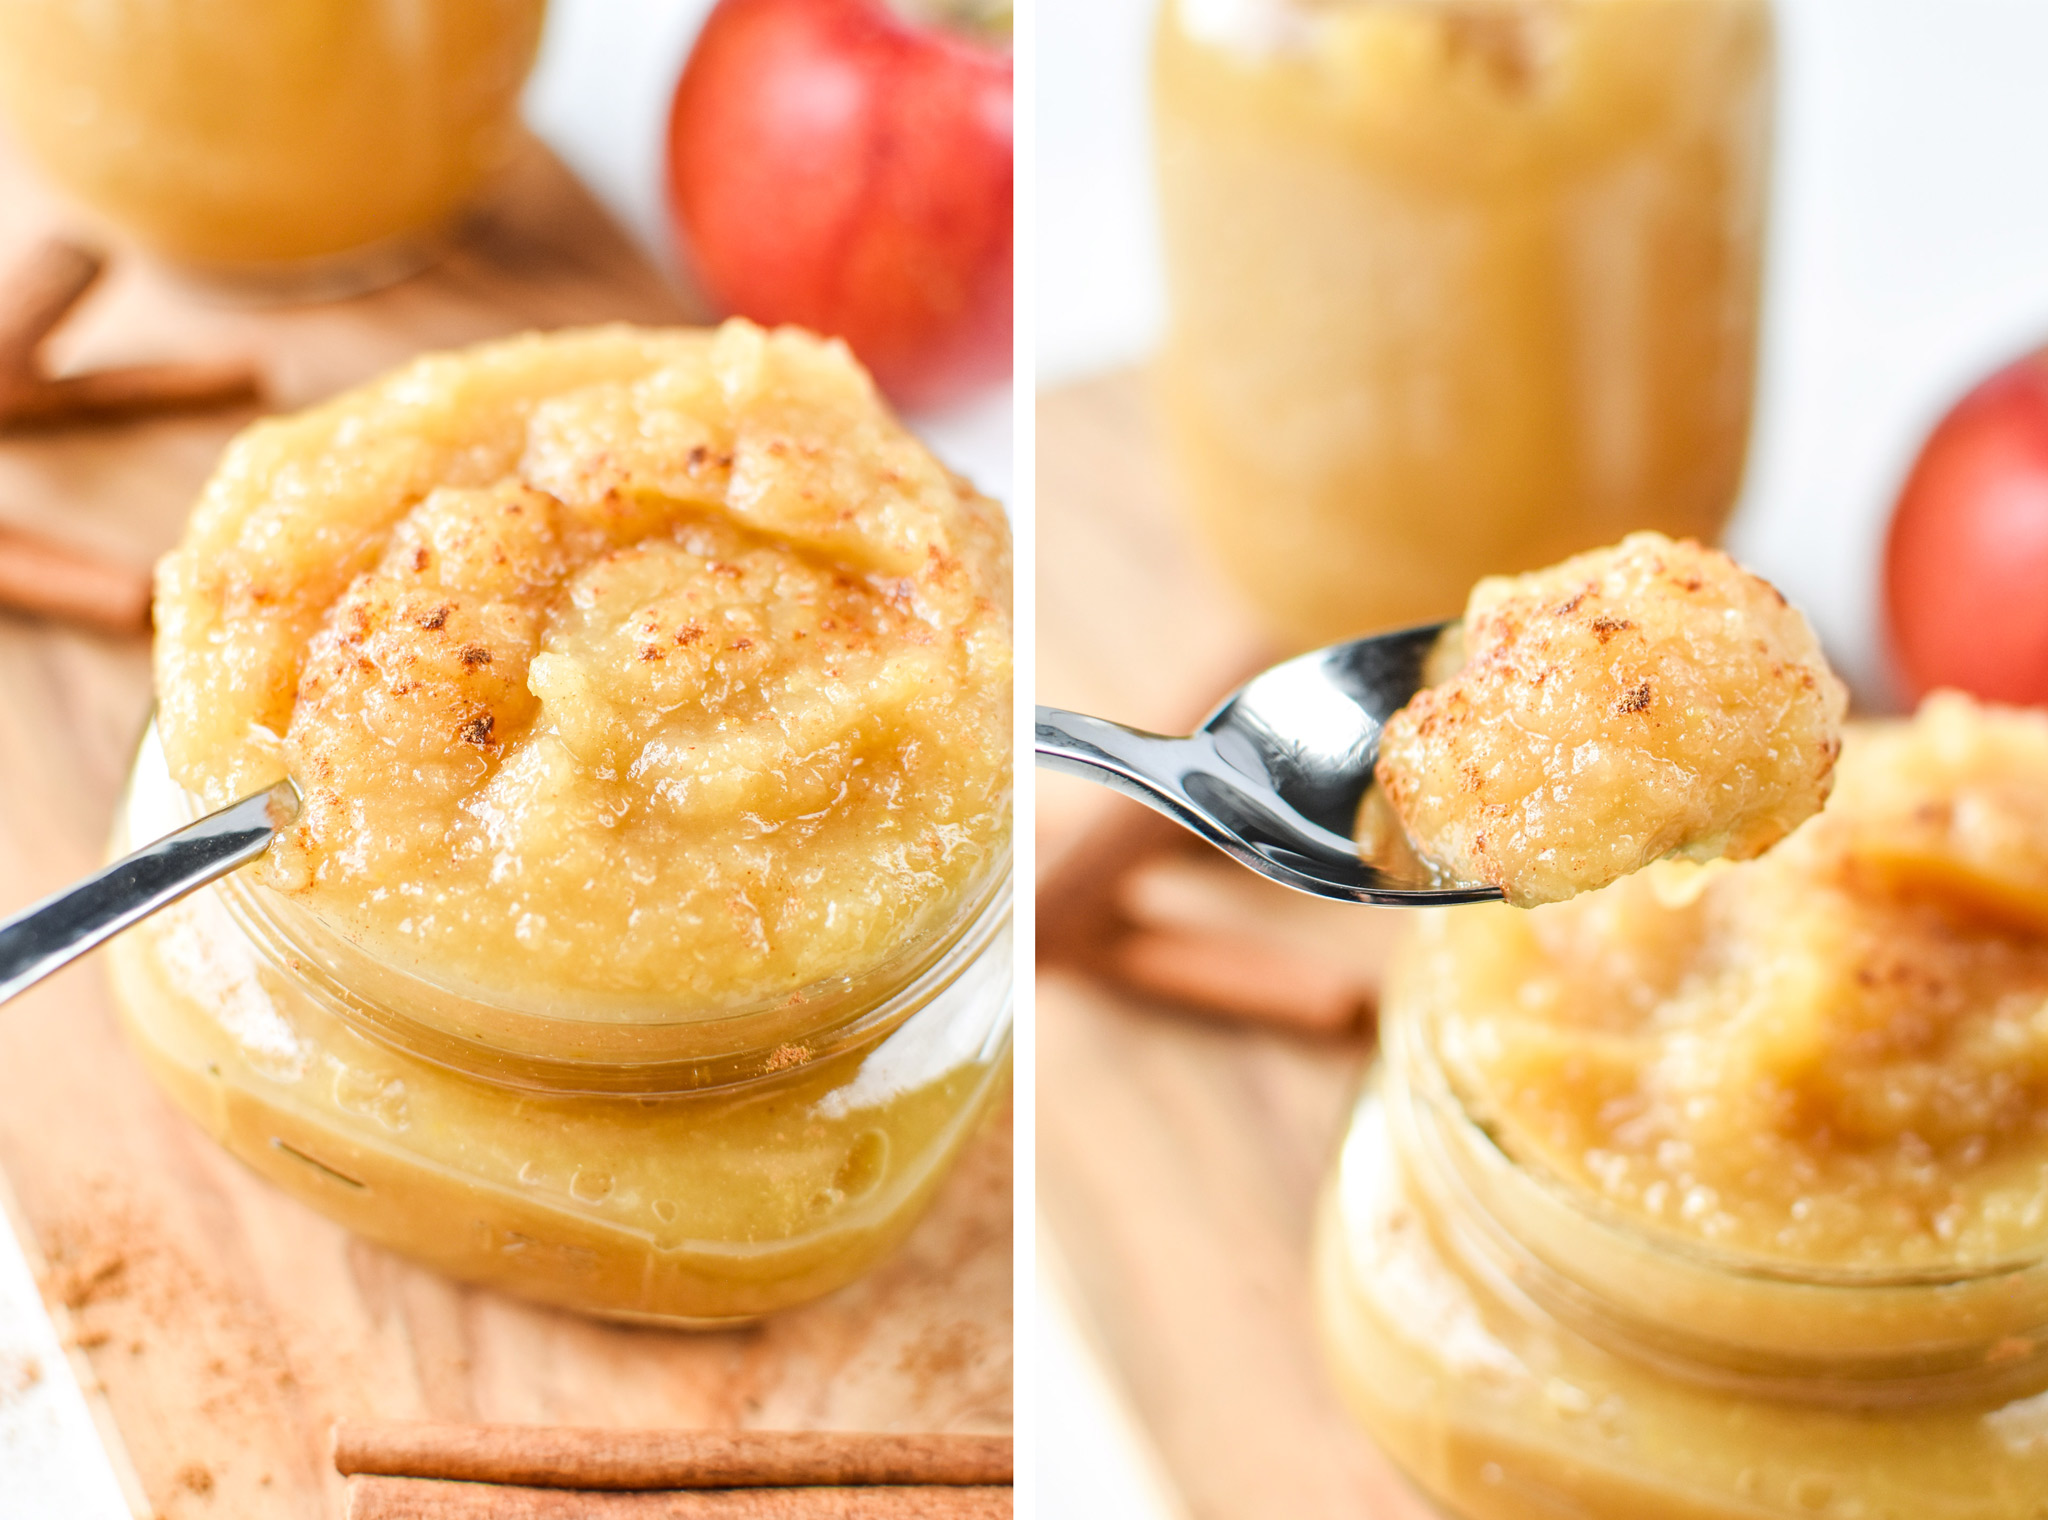 A spoonful of homemade applesauce. Store bought vs homemade: Which is cheaper?